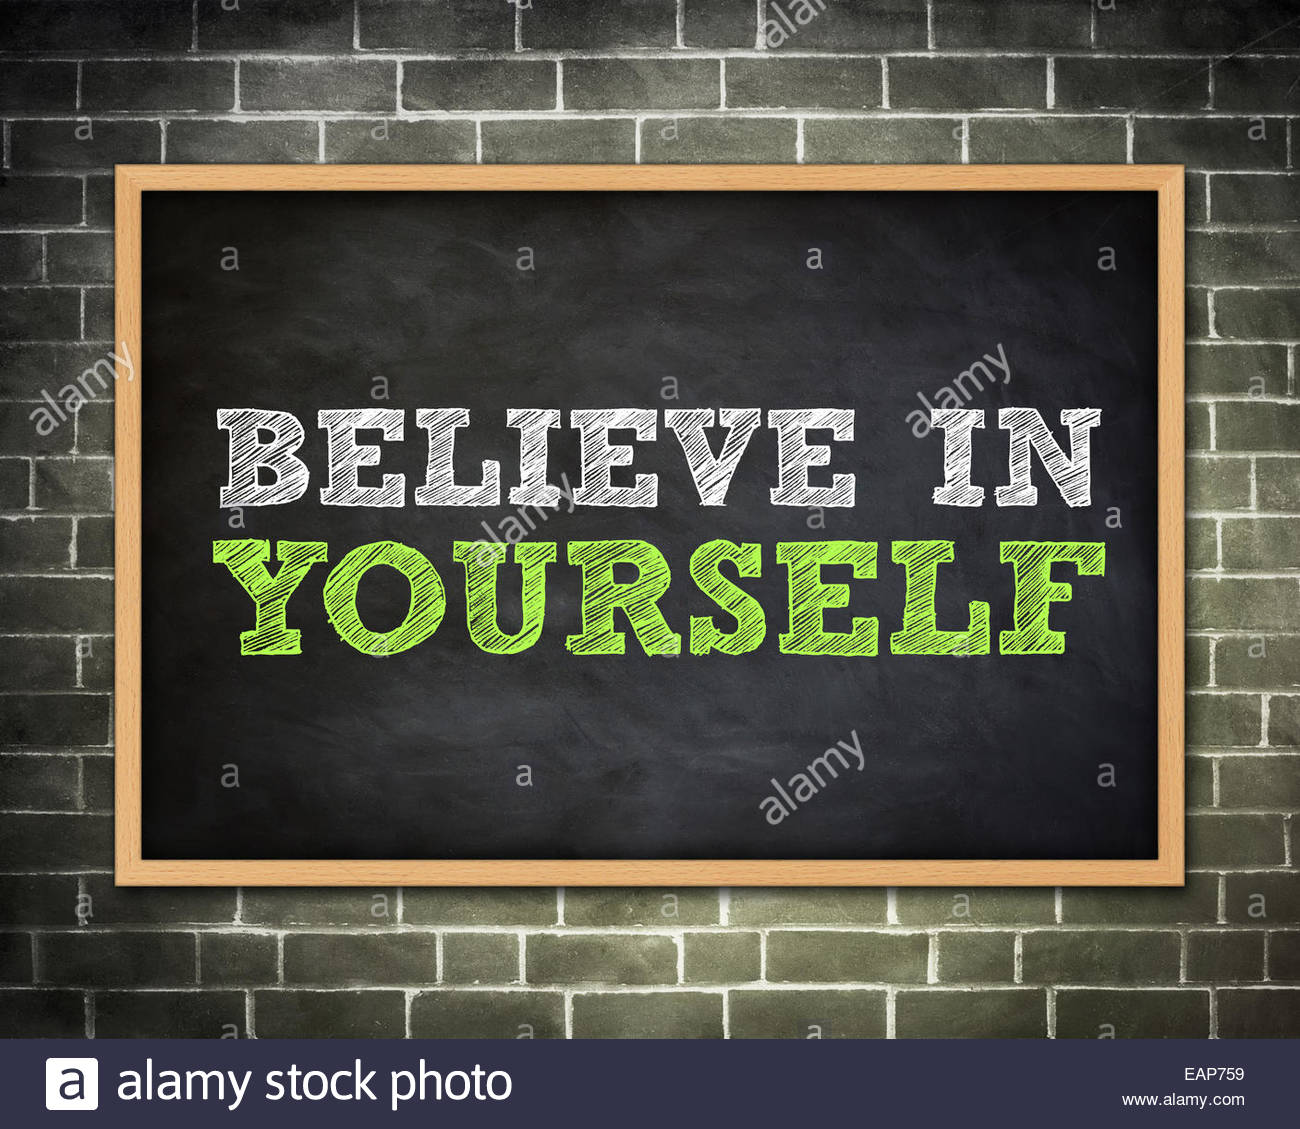 BELIEVE IN YOURSELF - blackboard concept - Stock Image